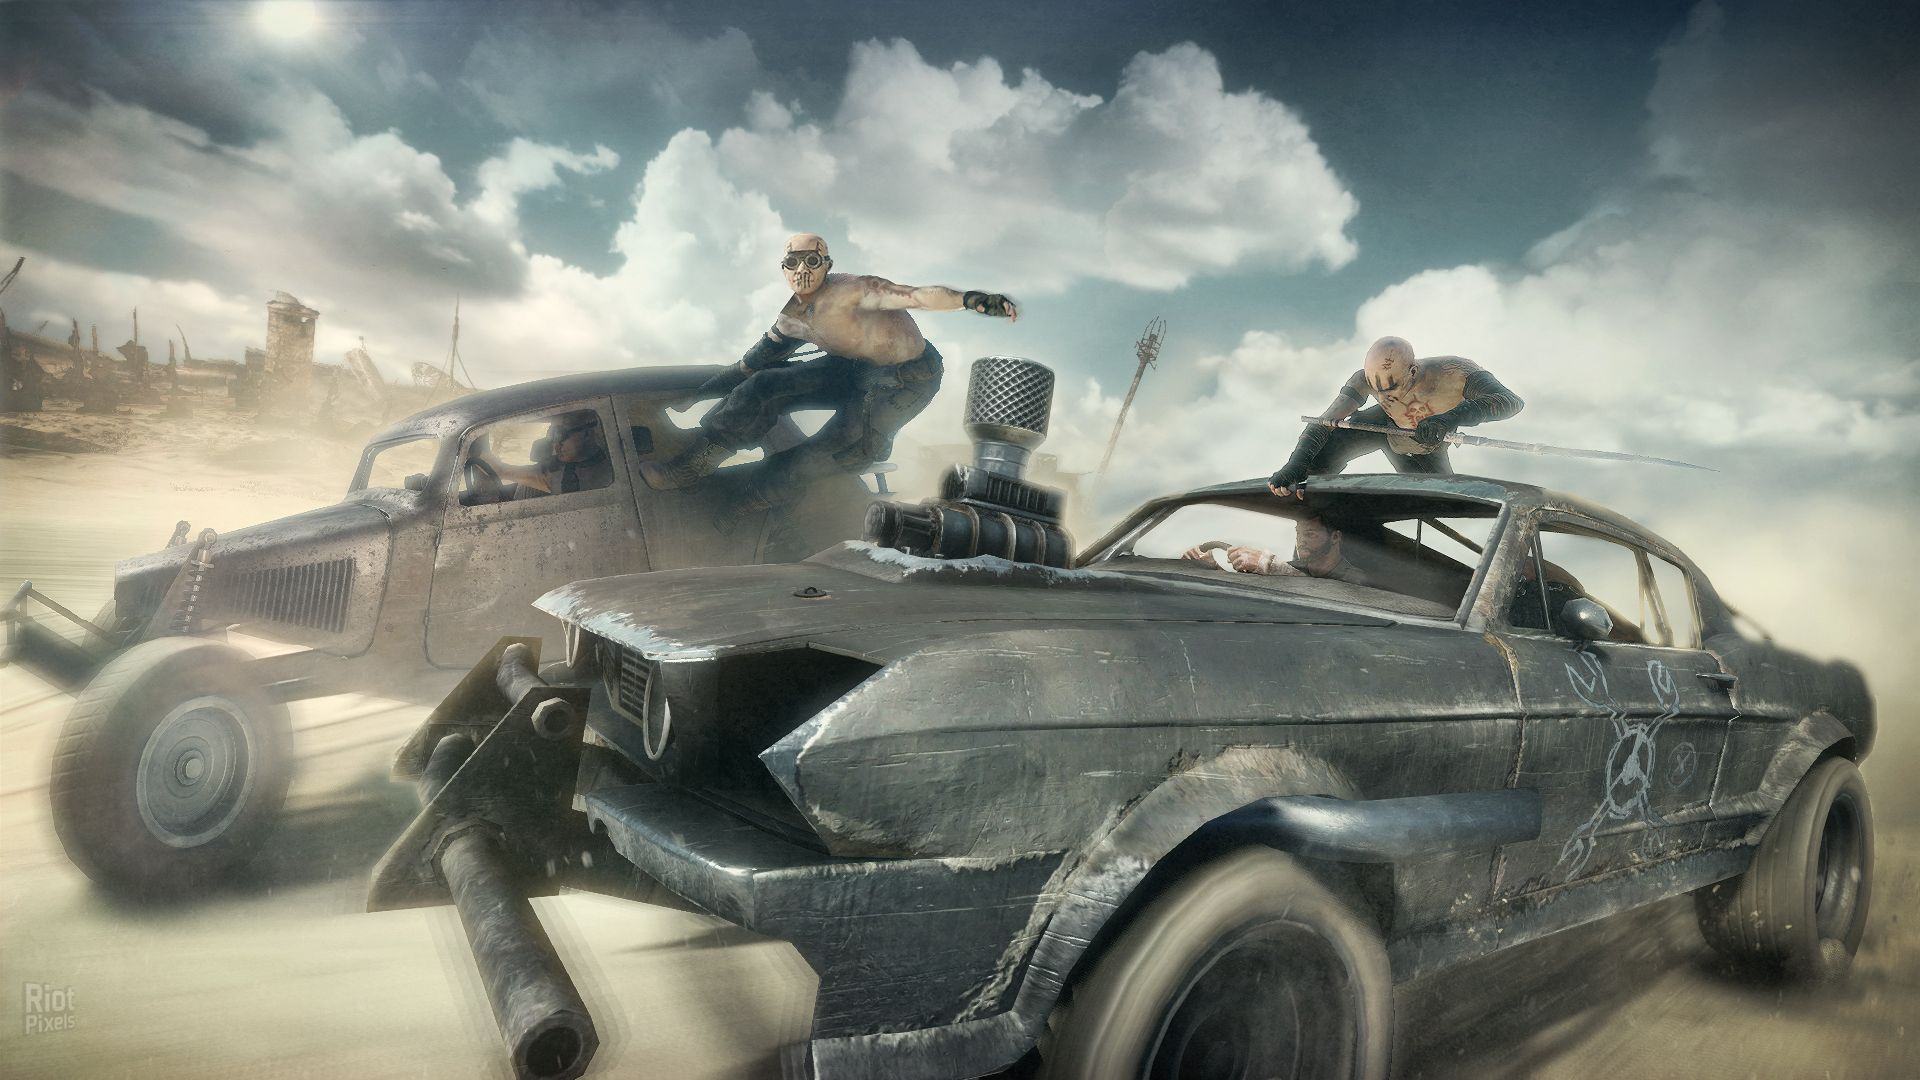 screenshot.mad-max.1920x1080.2013-07-15.9